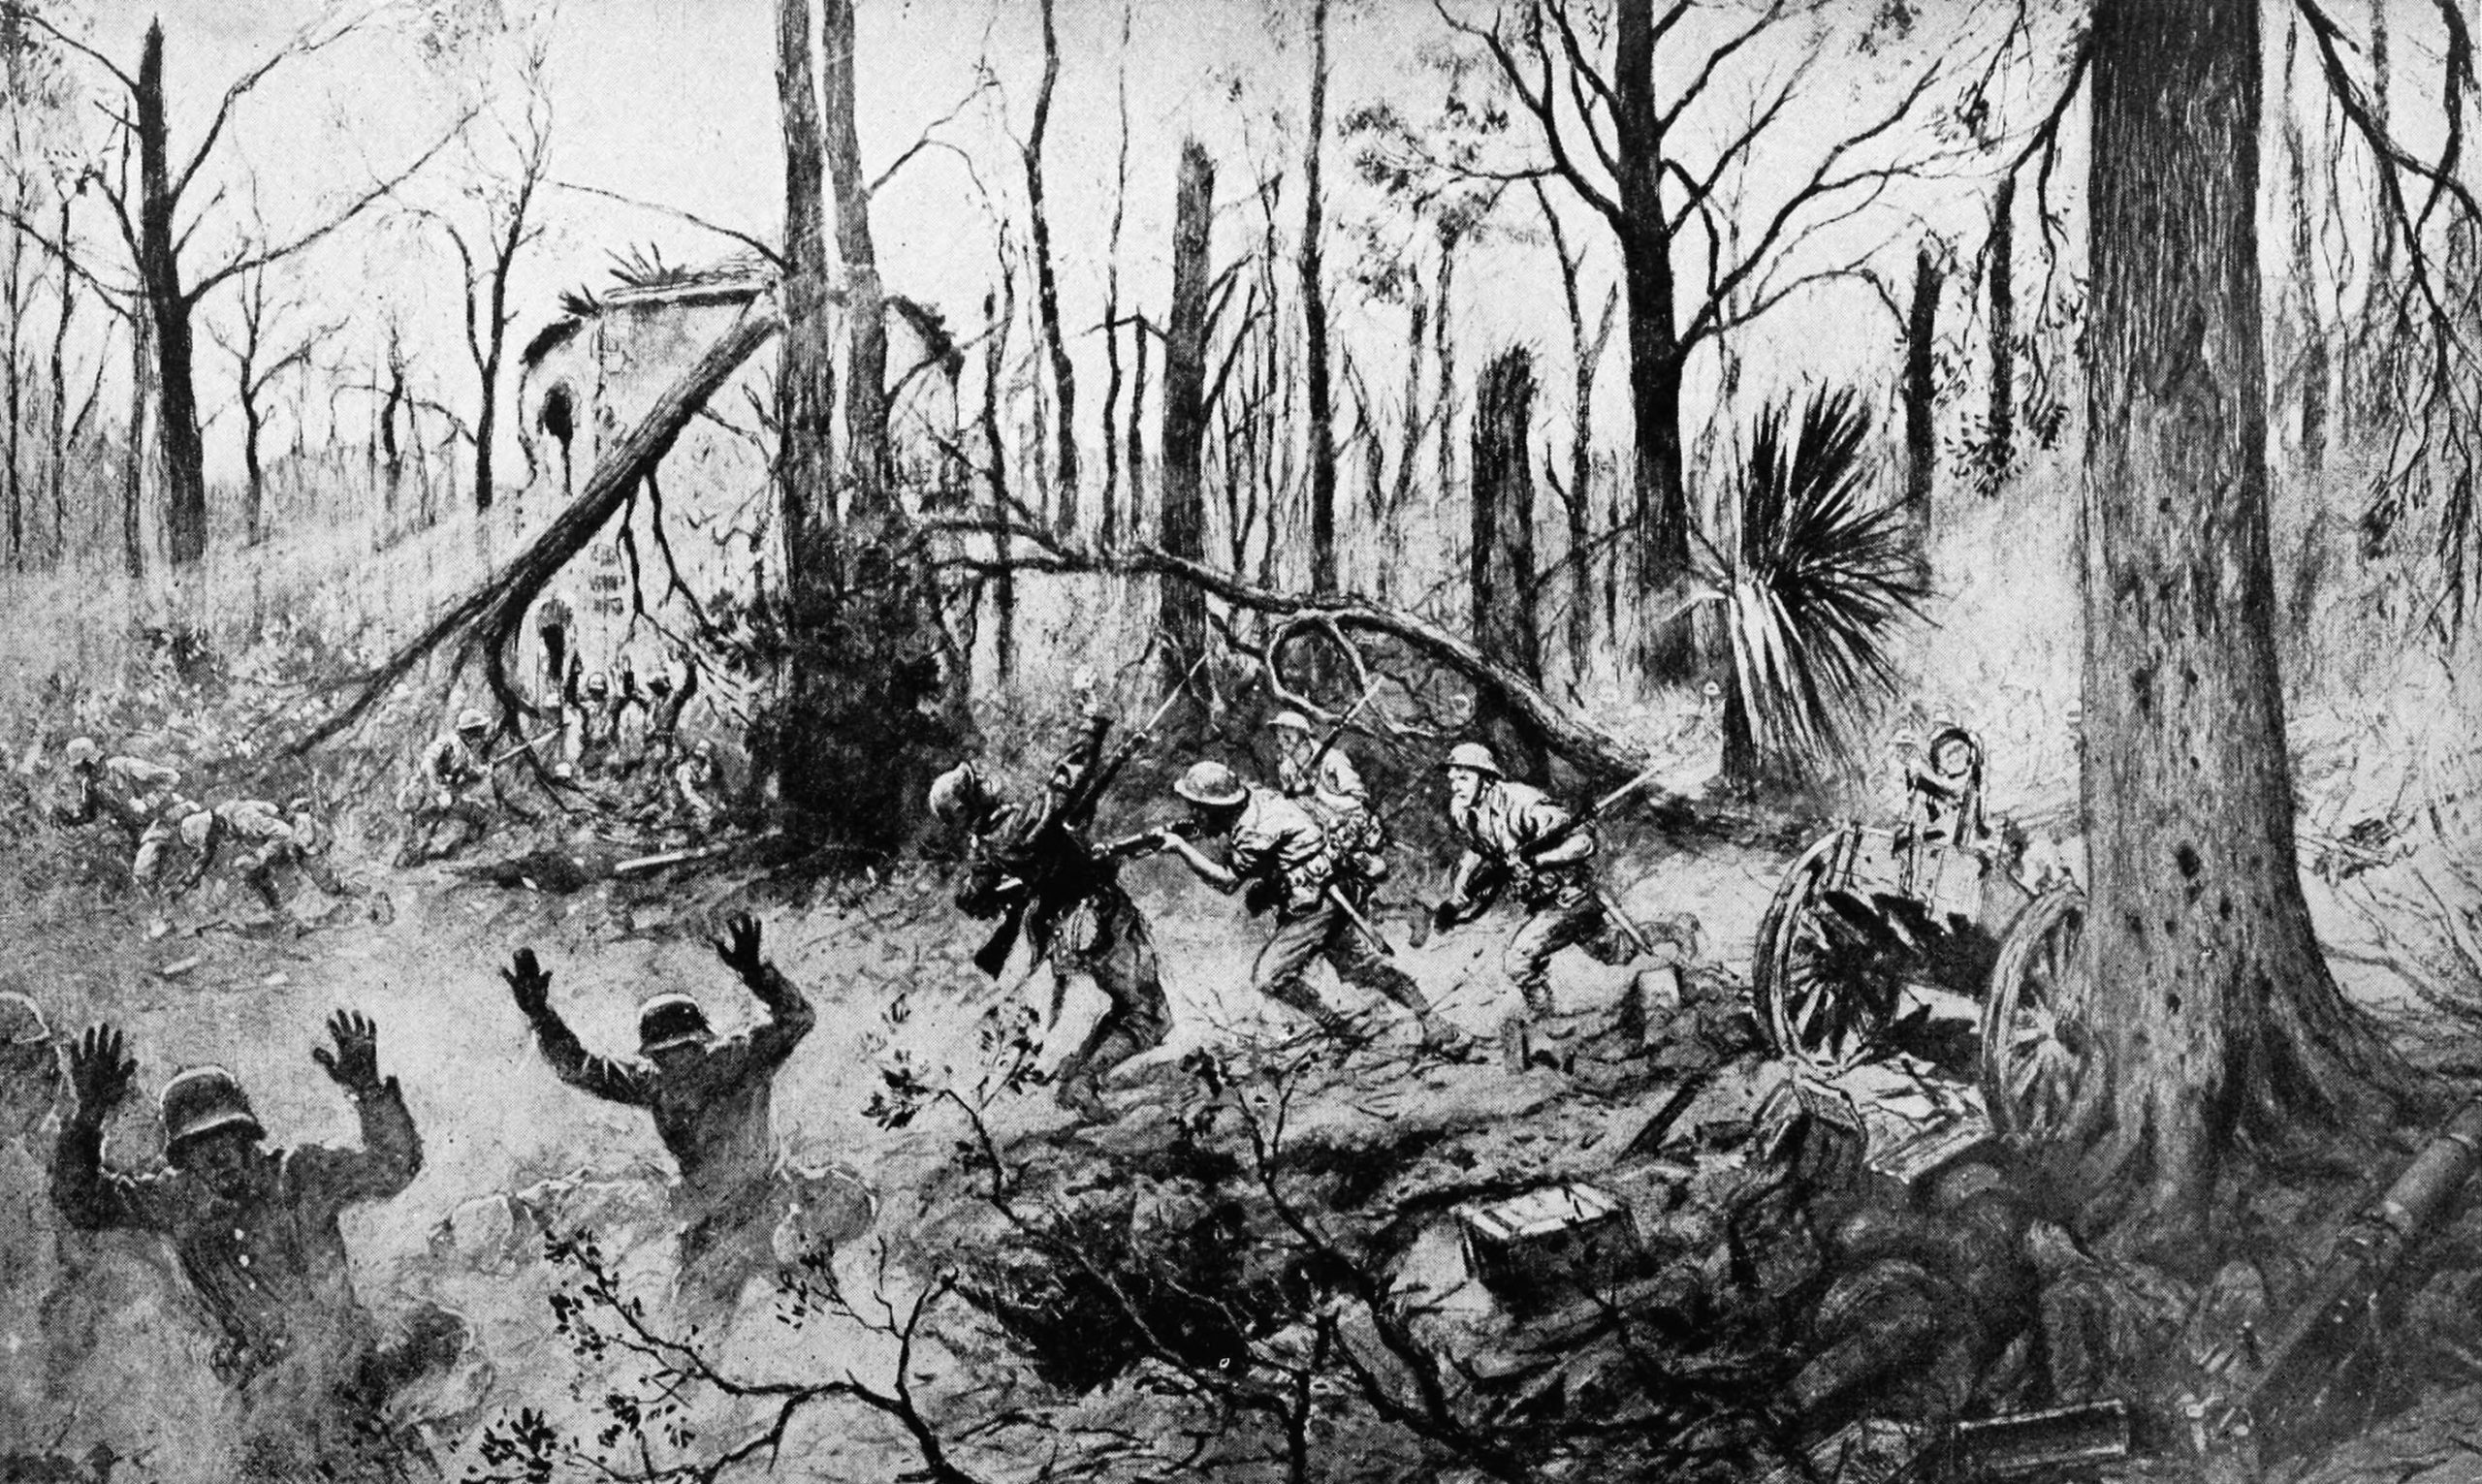 Battle Of Belleau Wood